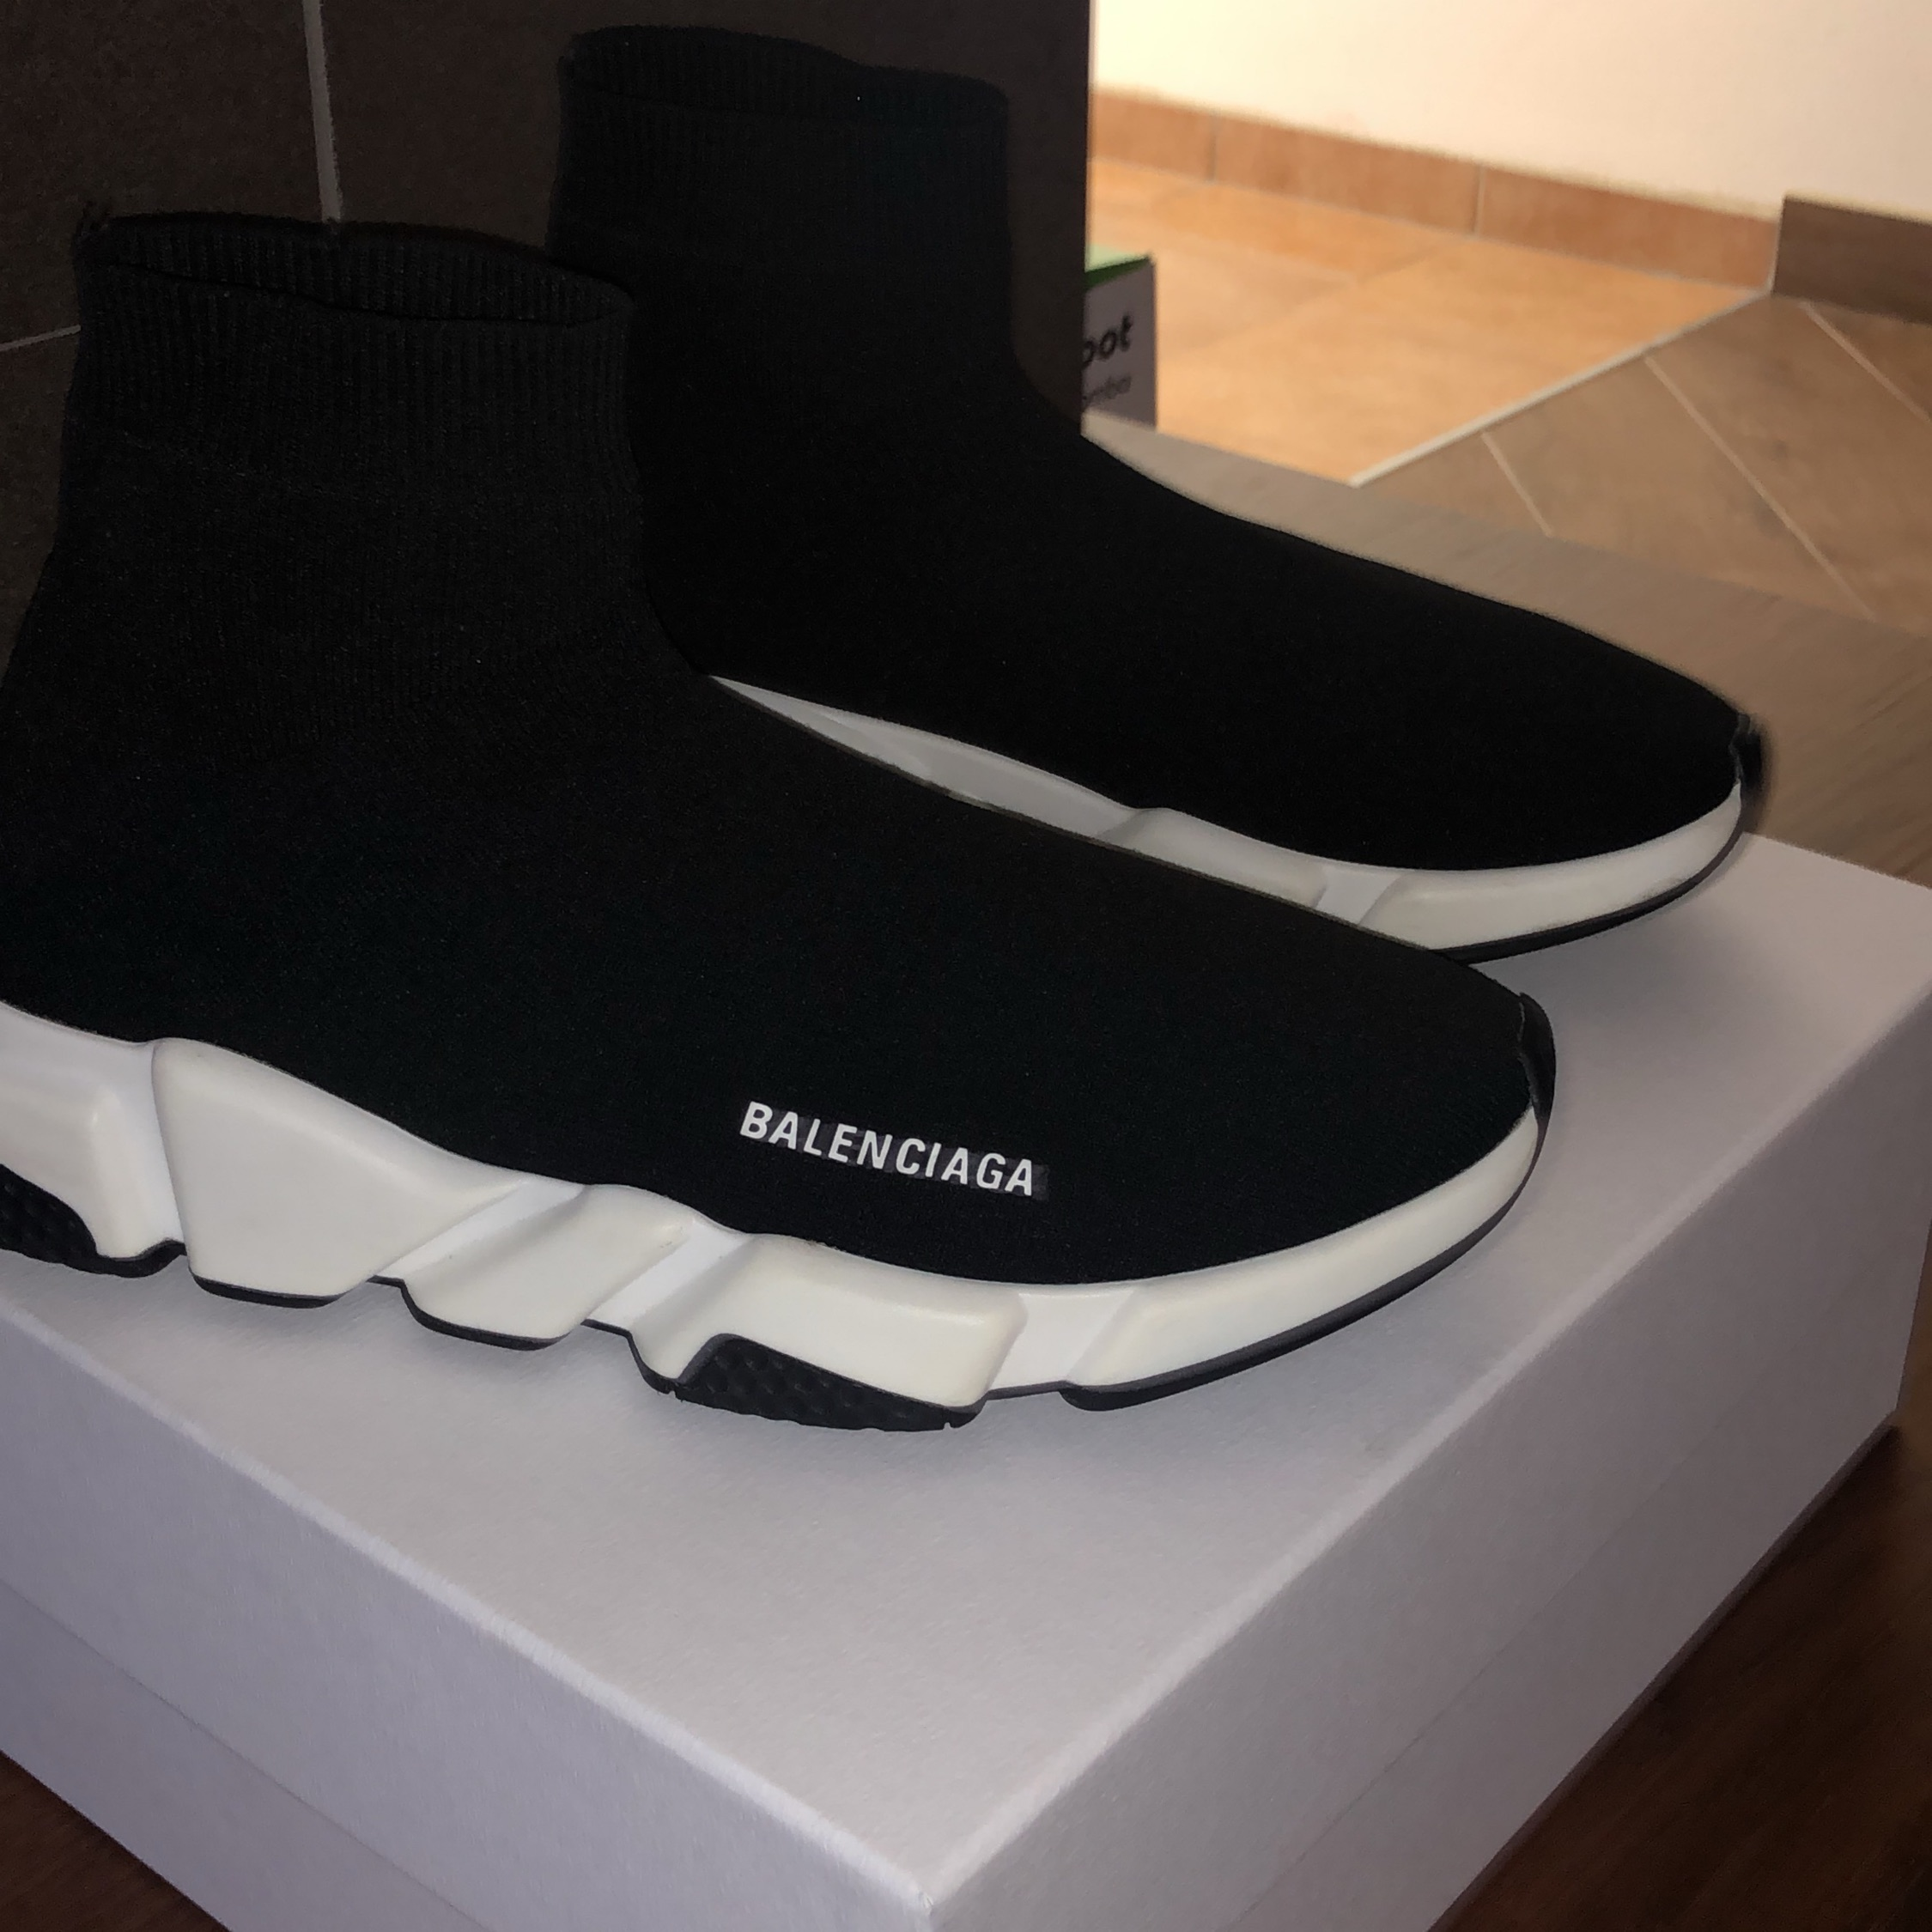 Fashionreps Balenciaga Speed Trainer Mount Mercy University